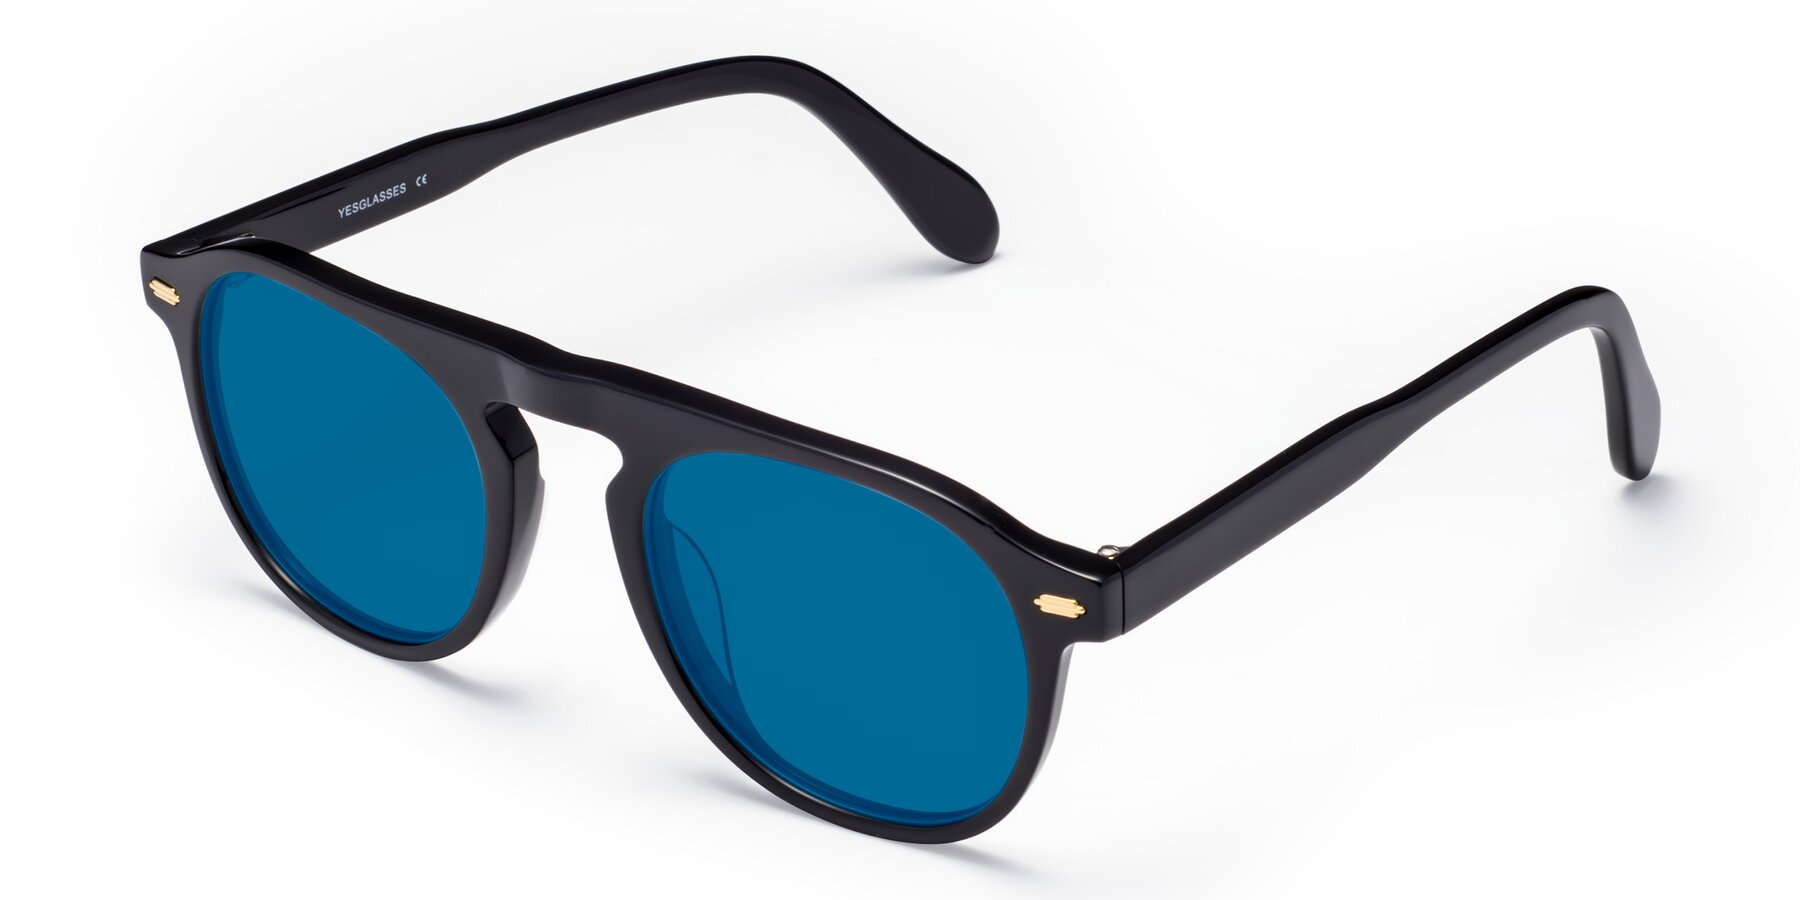 Angle of Mufasa in Black with Blue Tinted Lenses